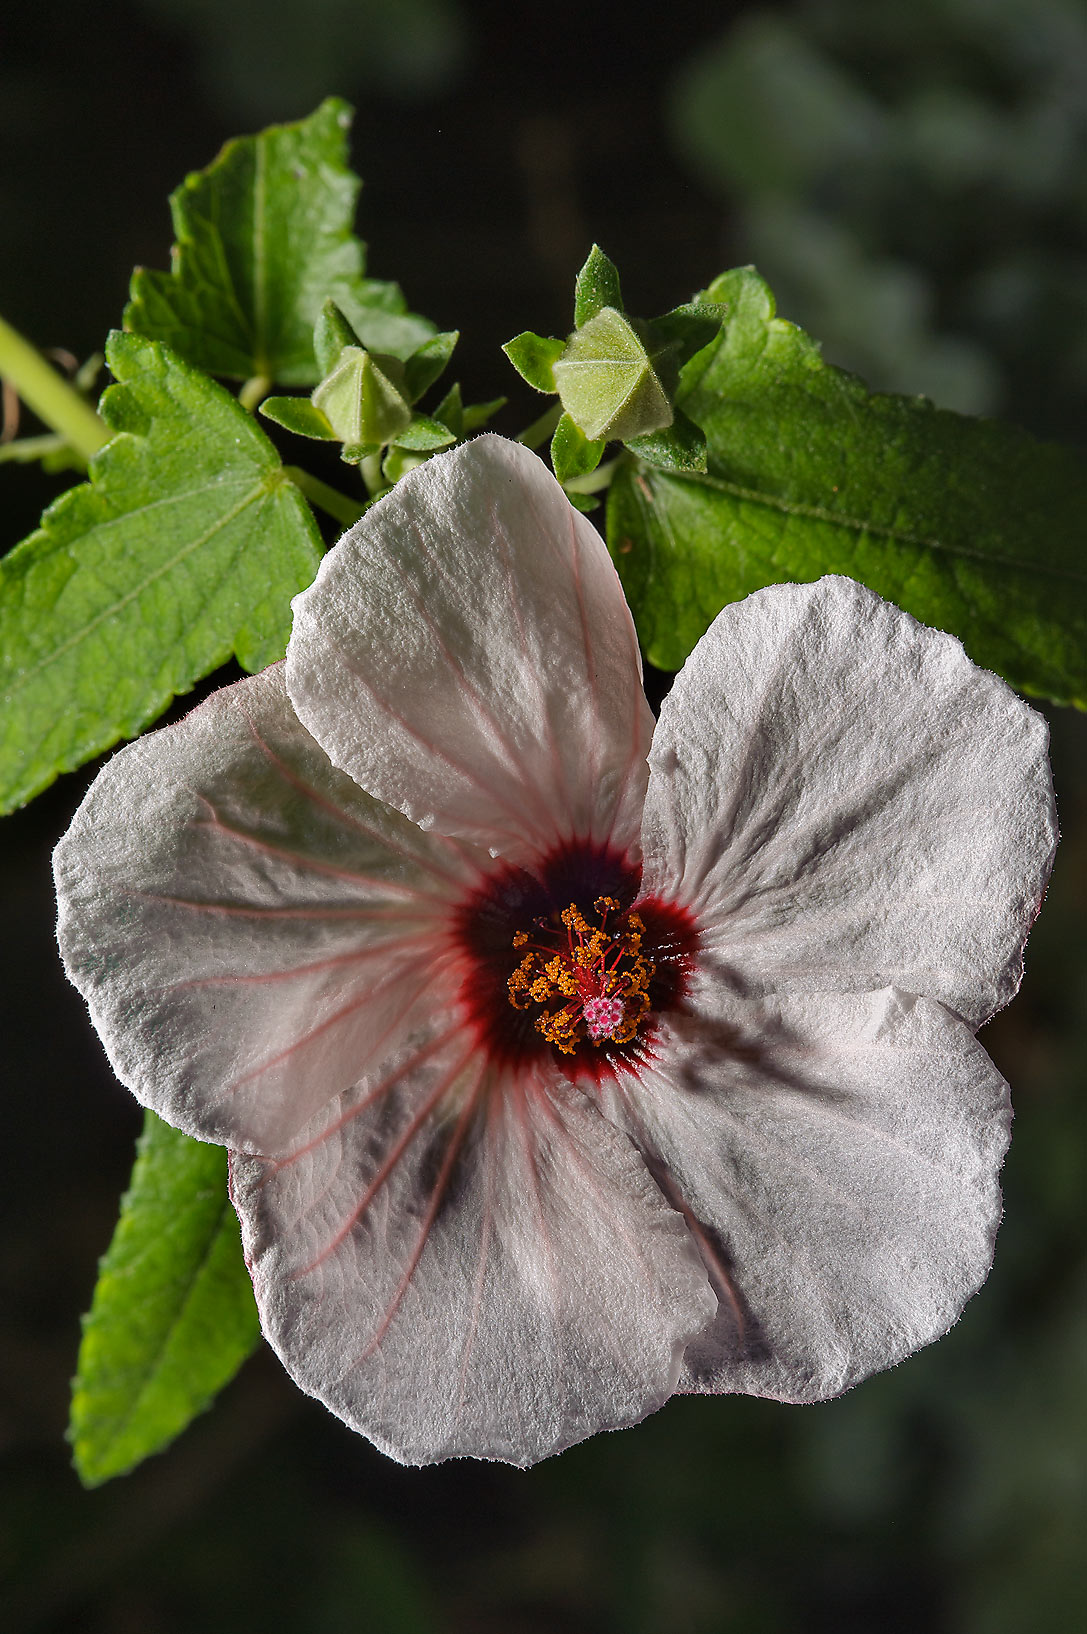 Marsh mallow (Halbert-leaved hibiscus, Hibiscus...Rose Emporium. Independence, Texas